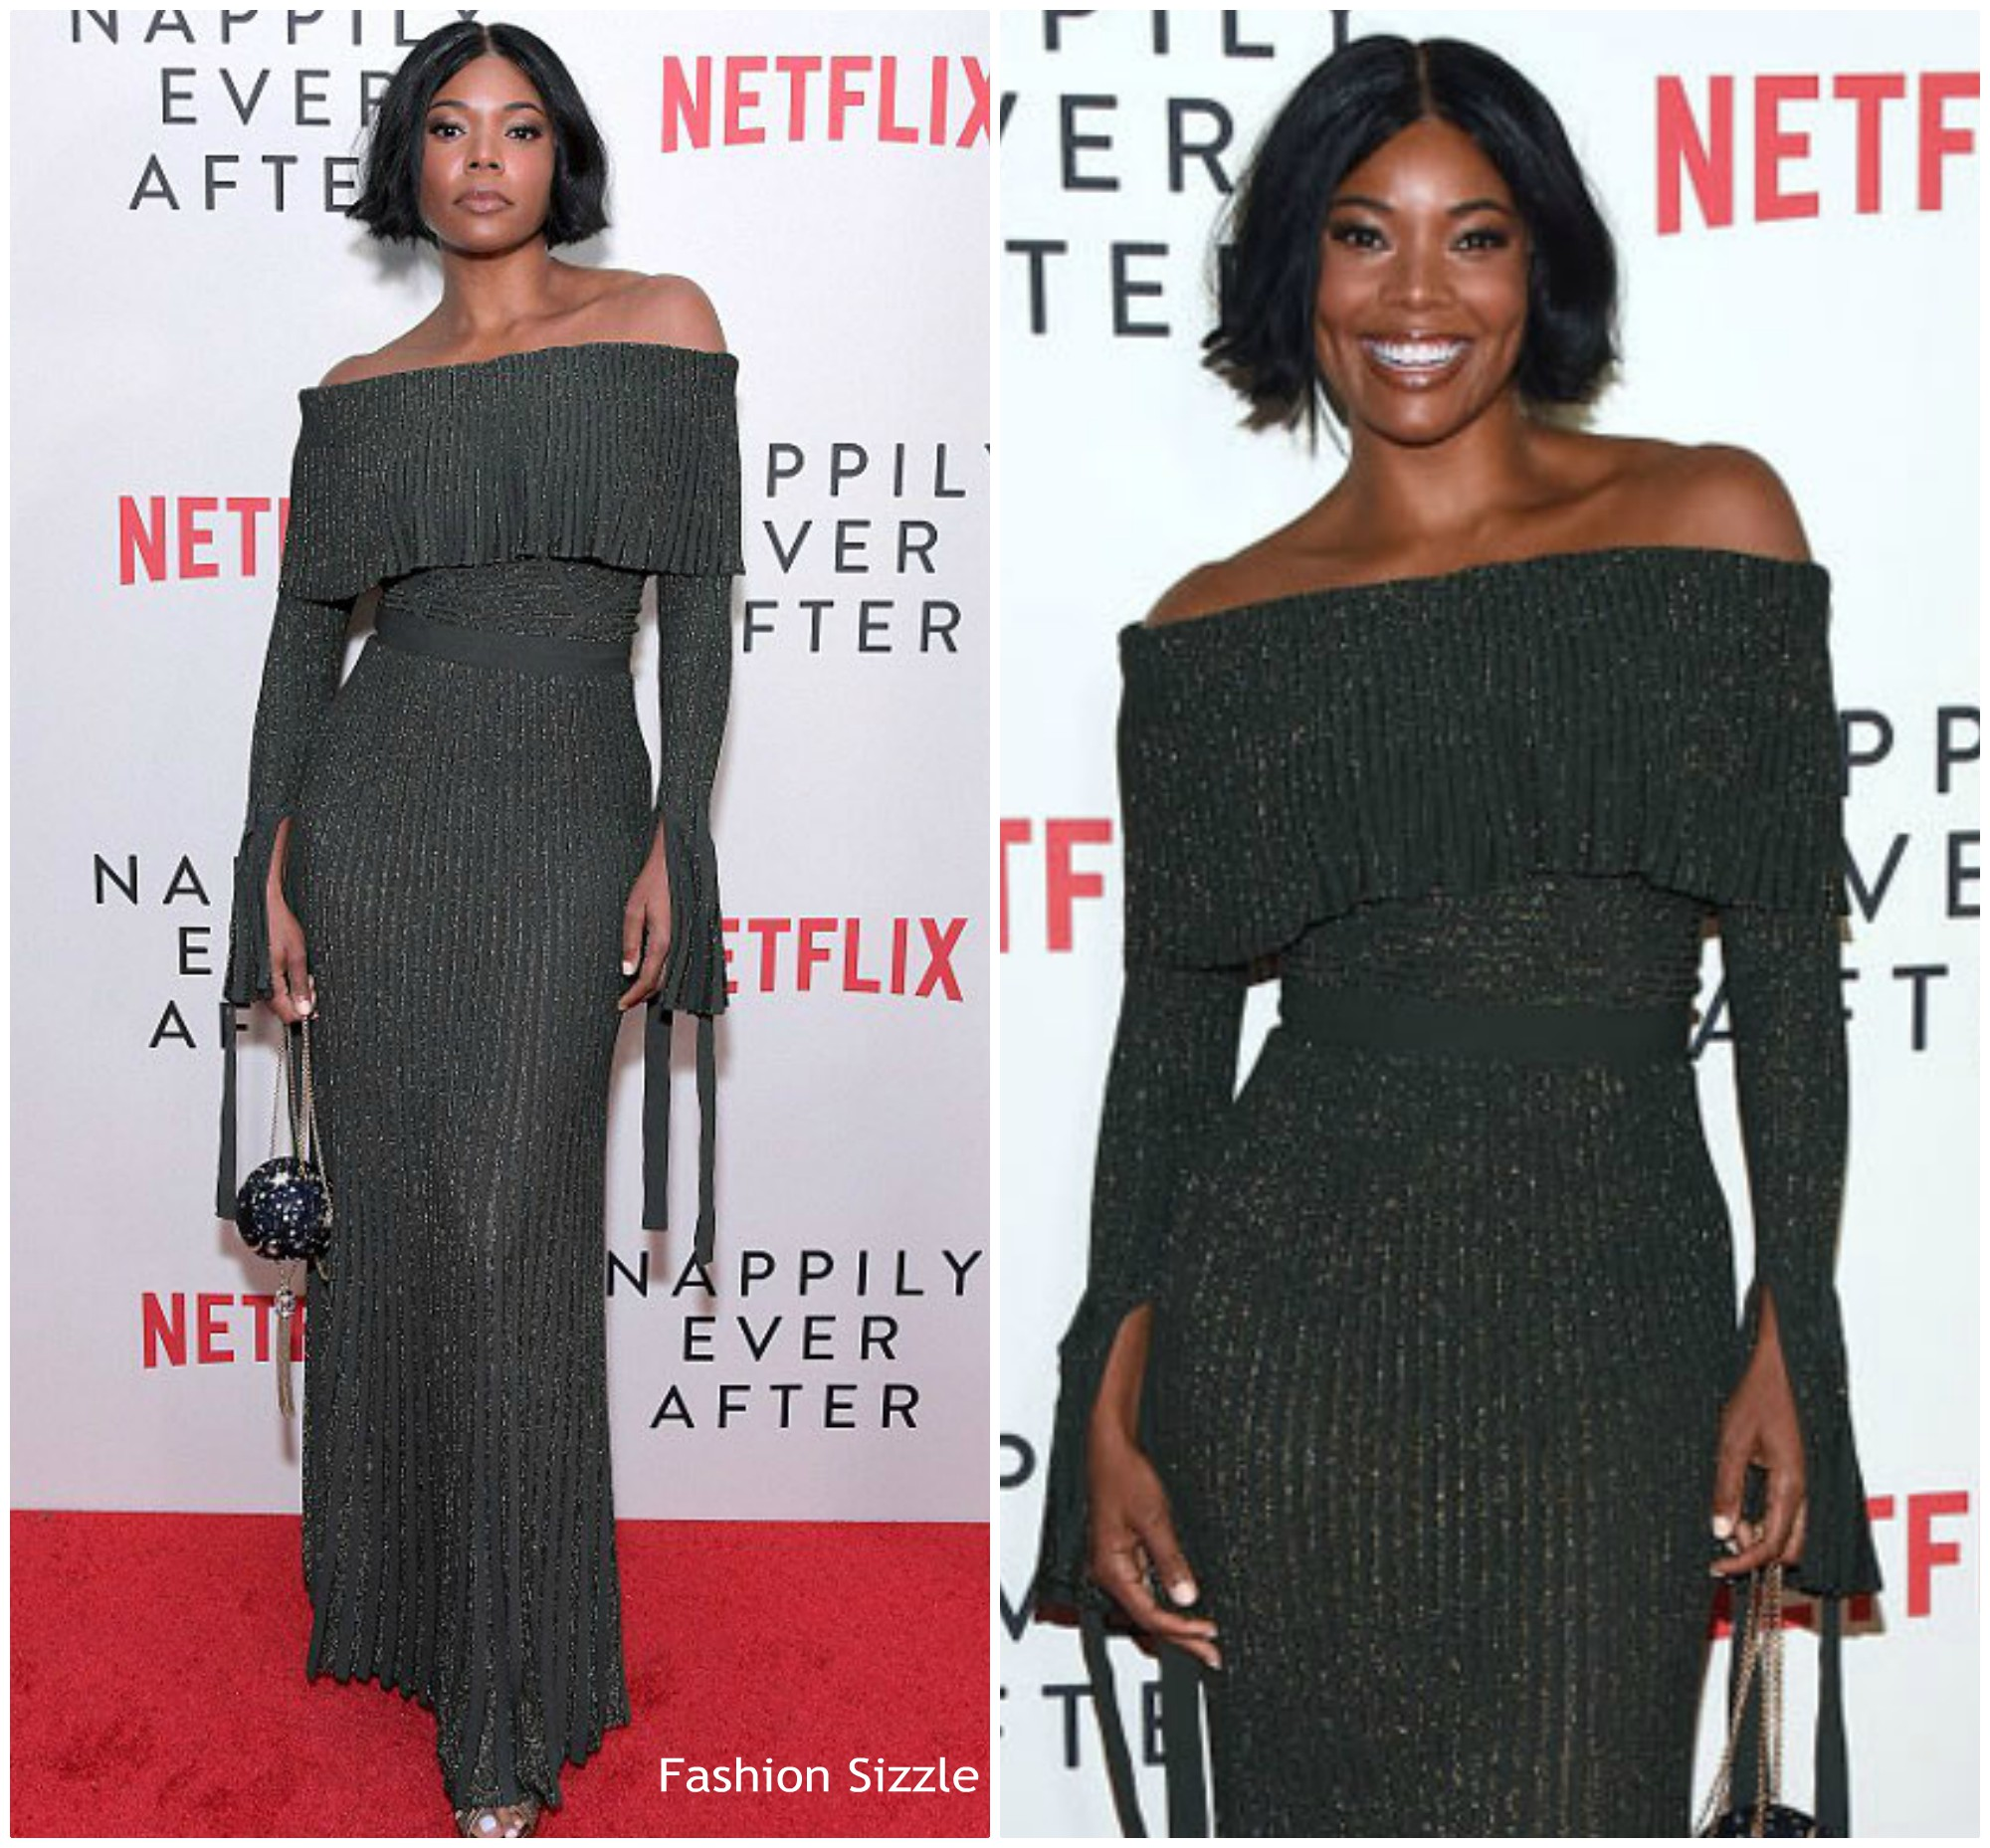 gabrielle-union-in-elie-saab-netflixs-nappily-ever-after-la-screening